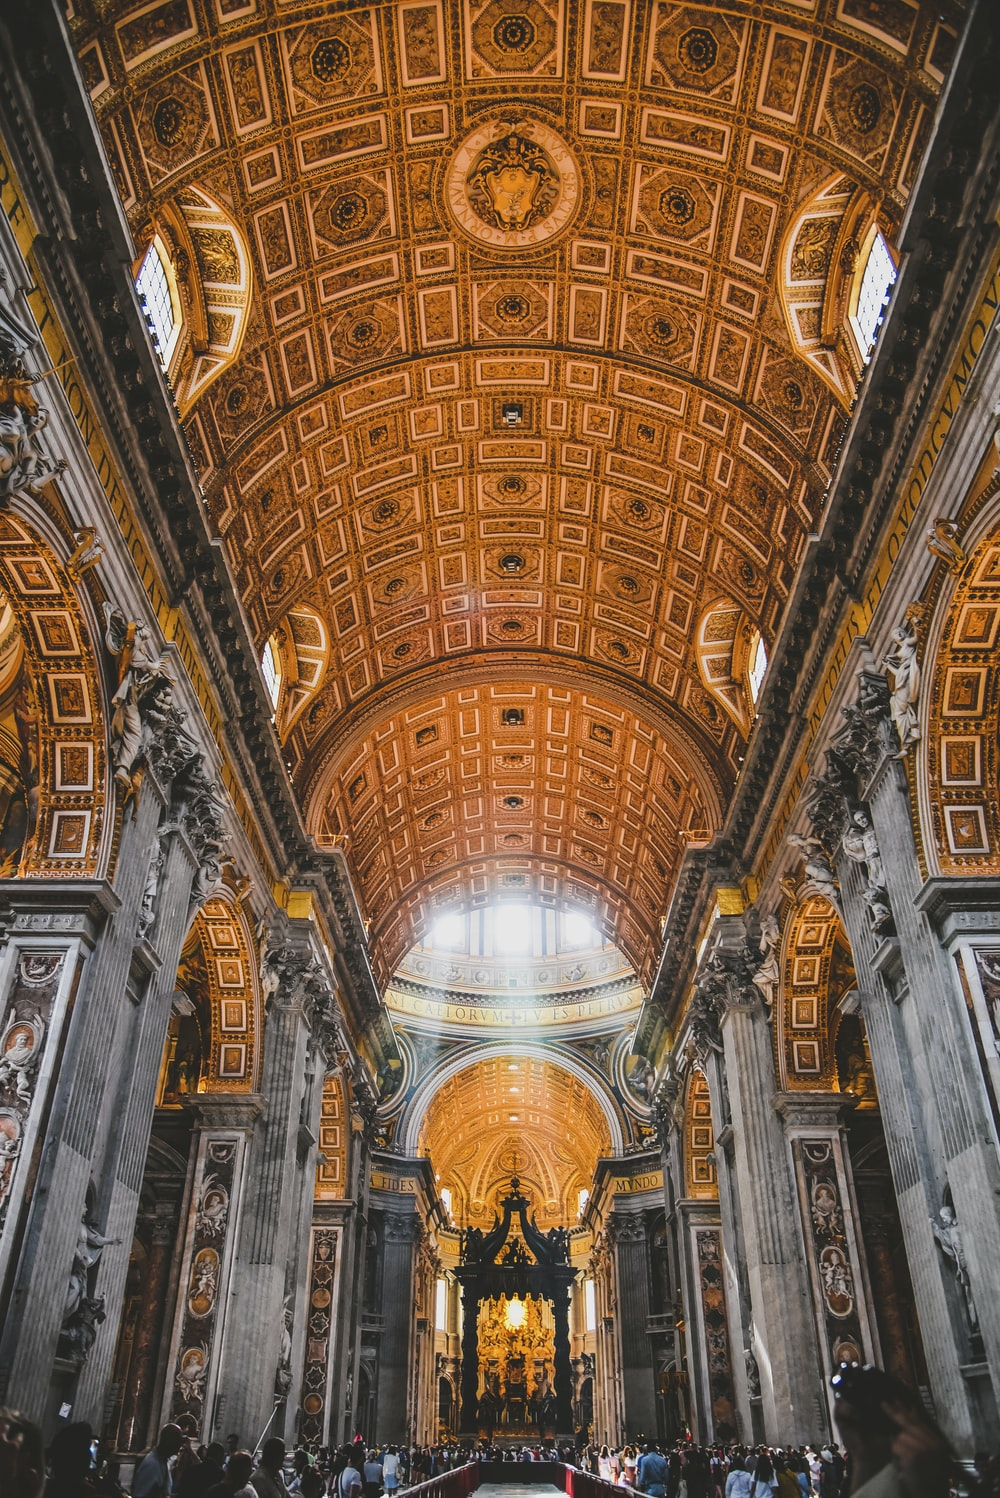 St. Peter's Basilica ceiling